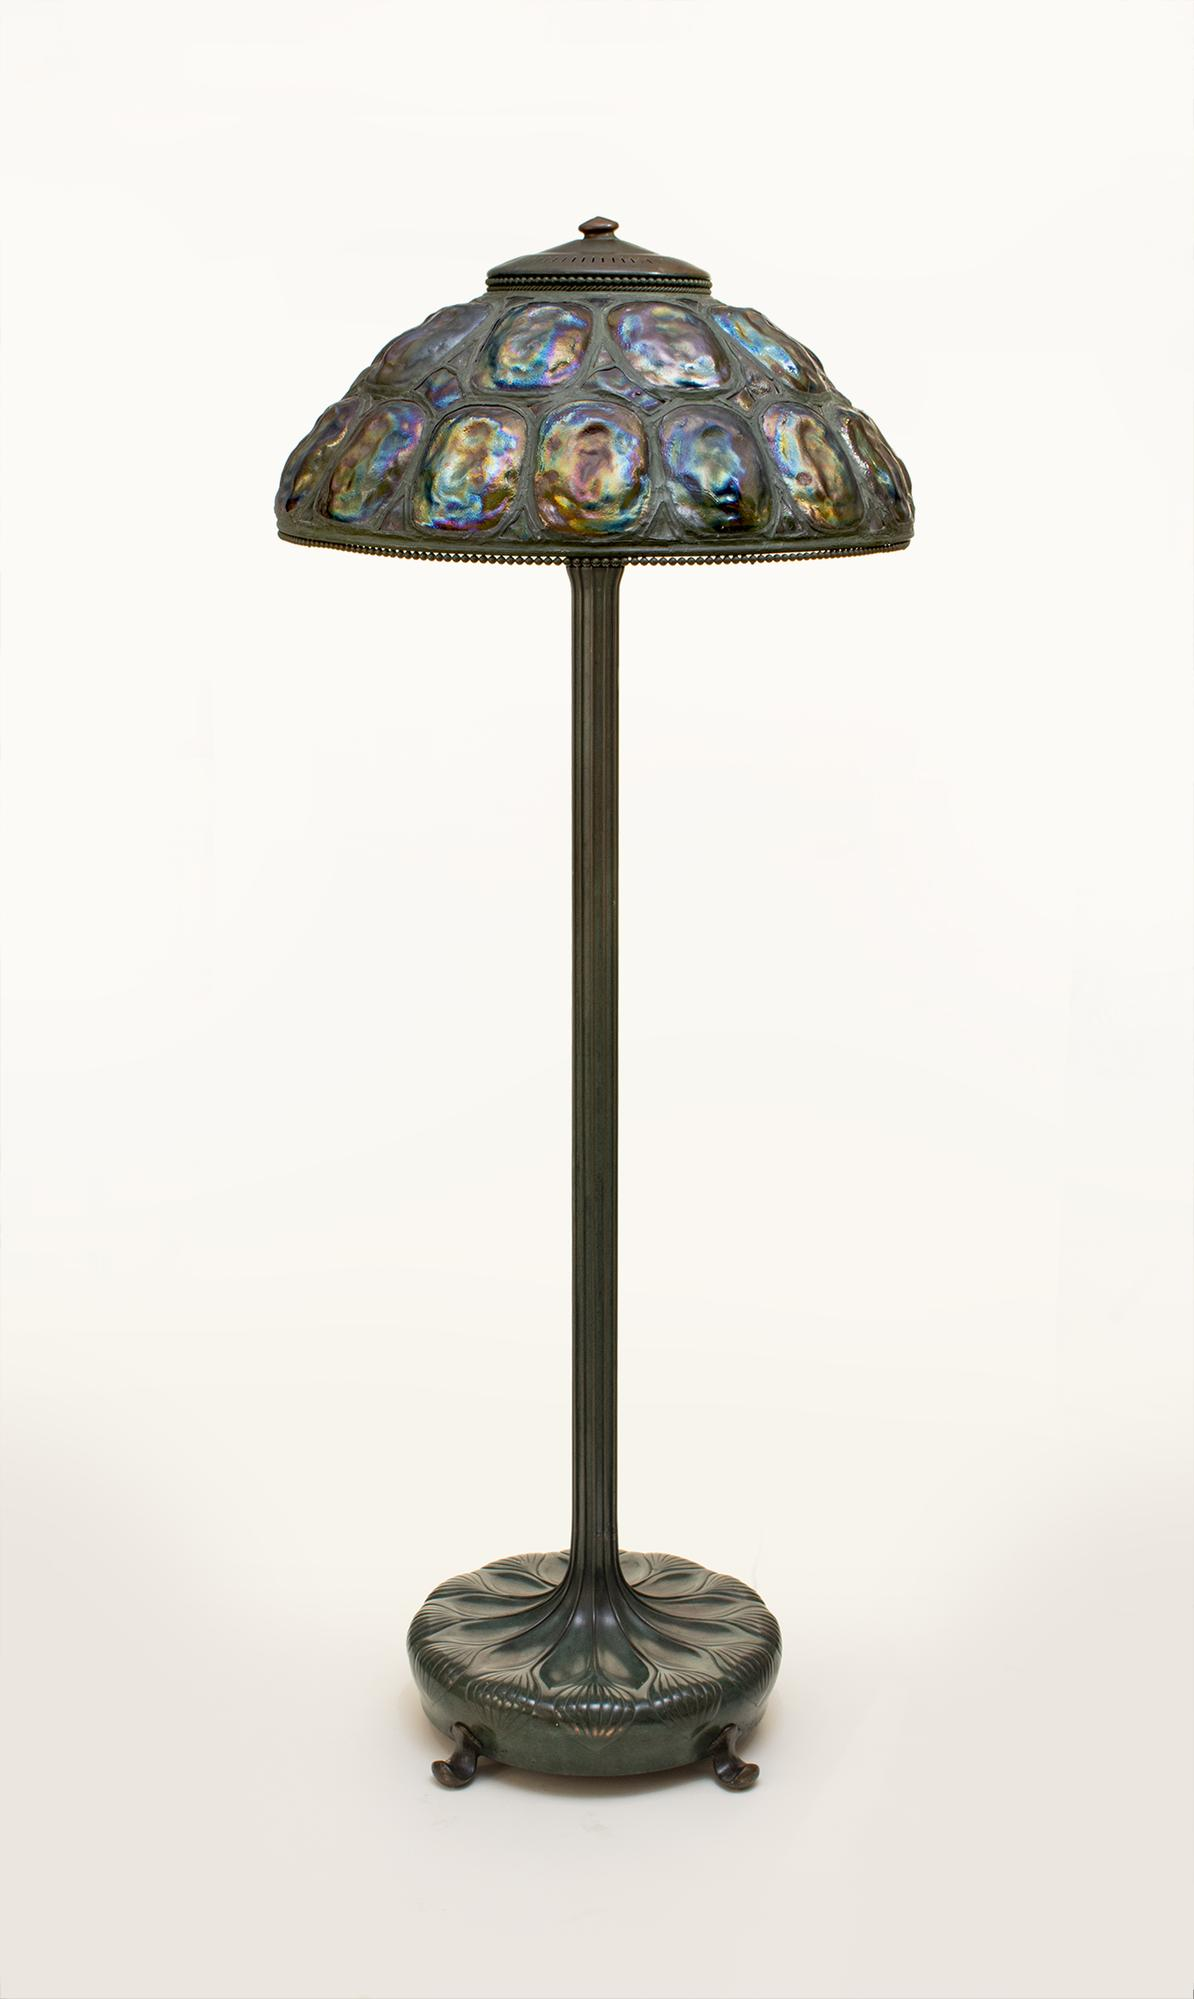 Tiffany Studios Turtle Back Floor Lamp 2